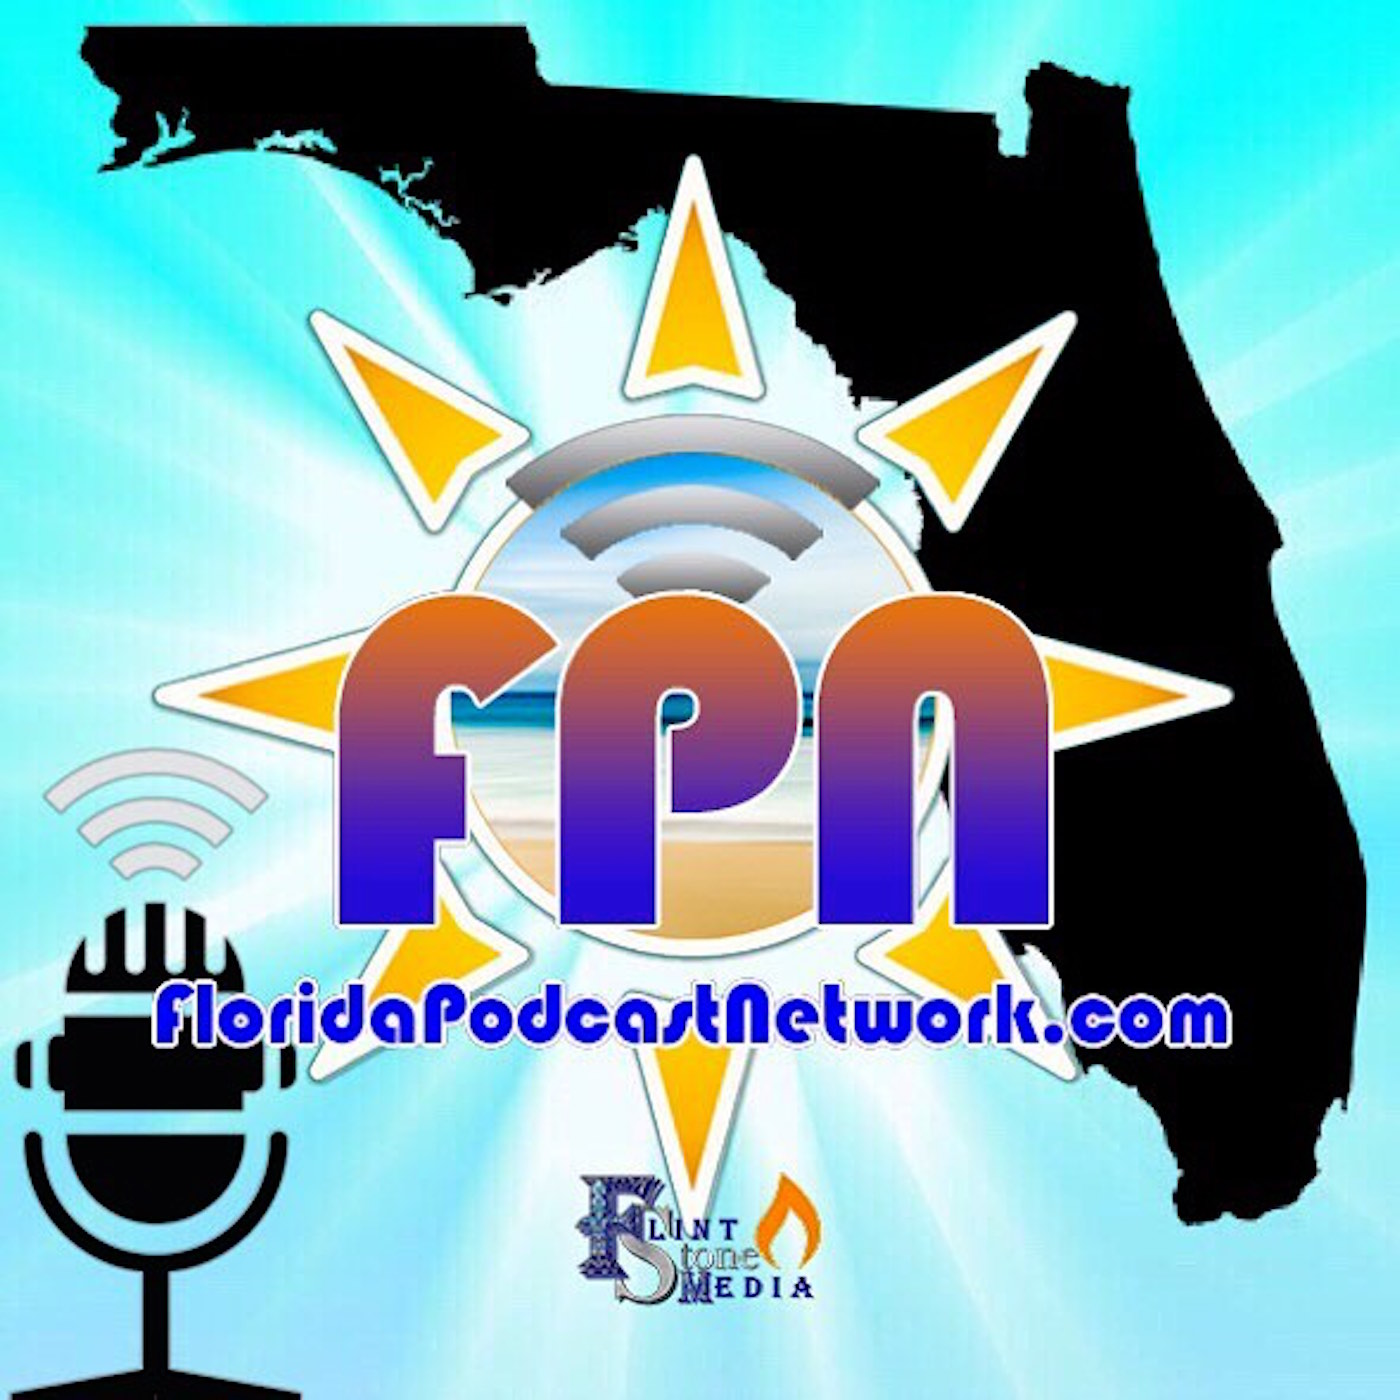 The Florida Podcast Network